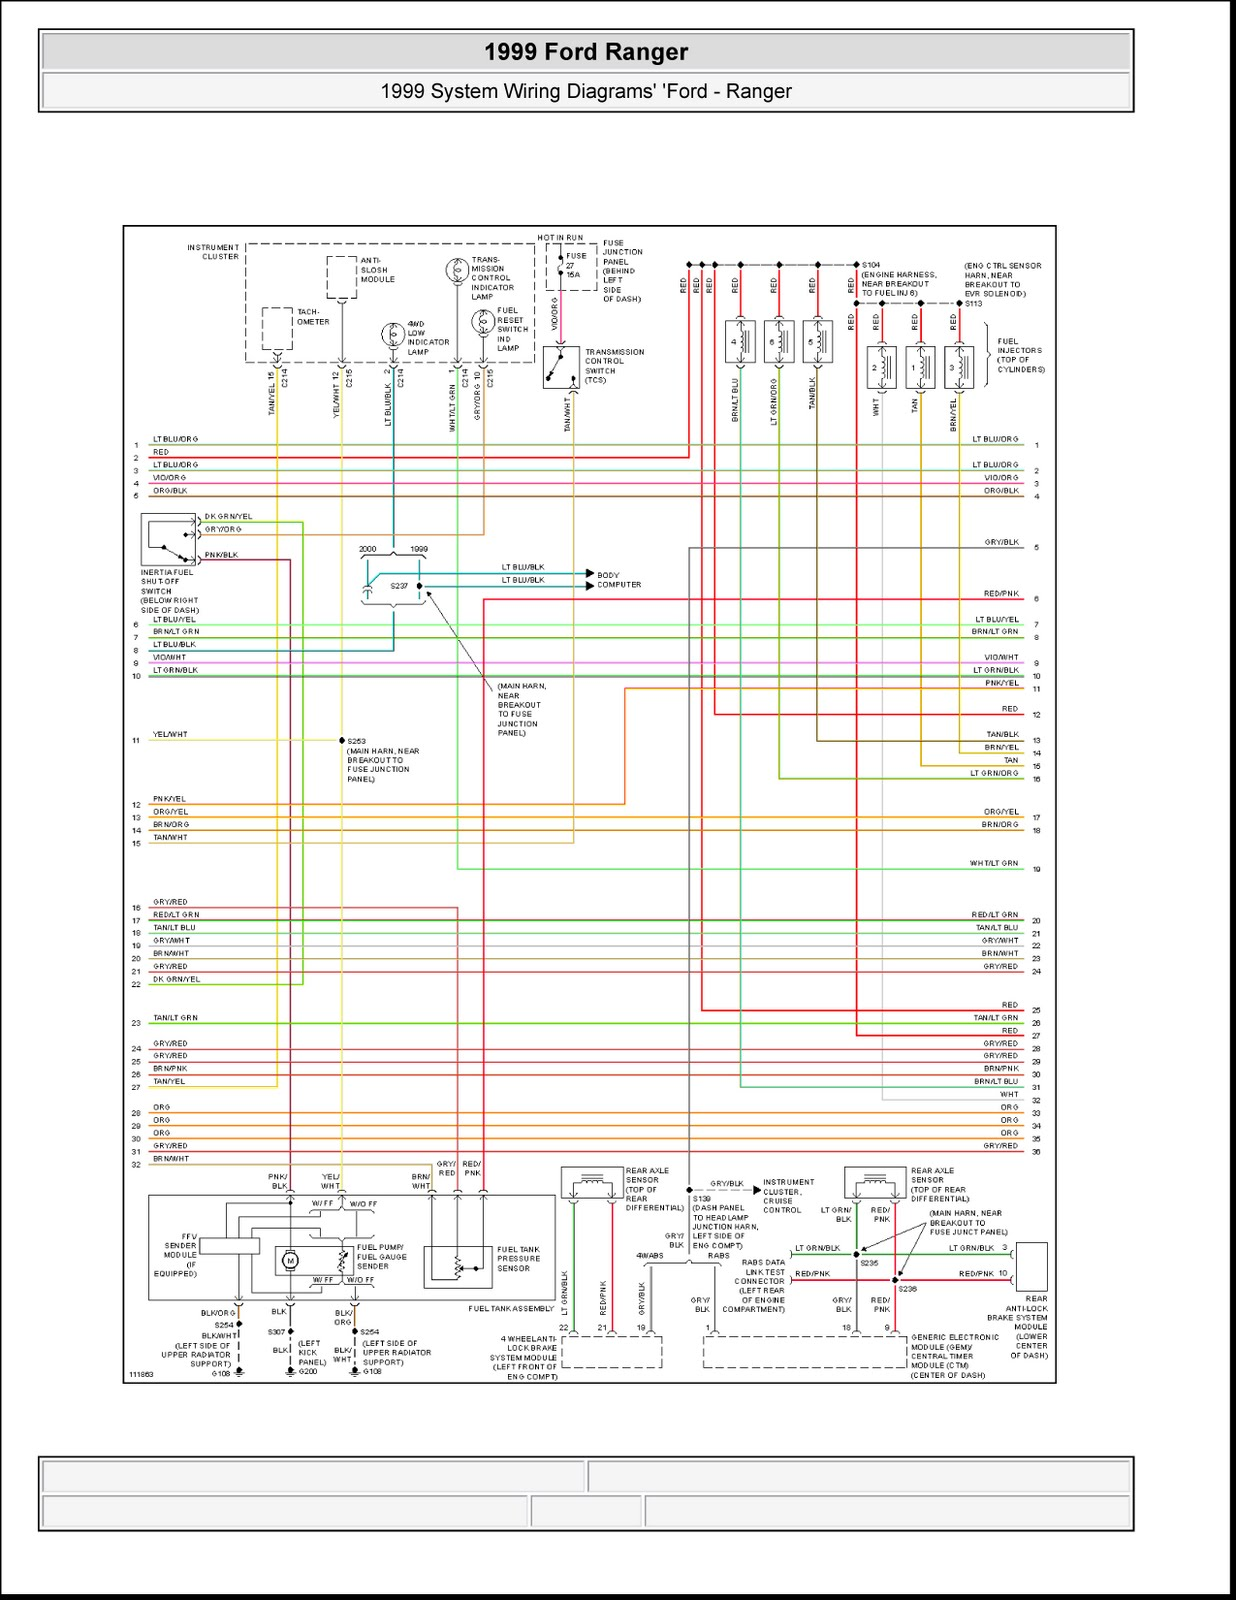 1999 Ford Ranger System Wiring Diagrams | 4 Images